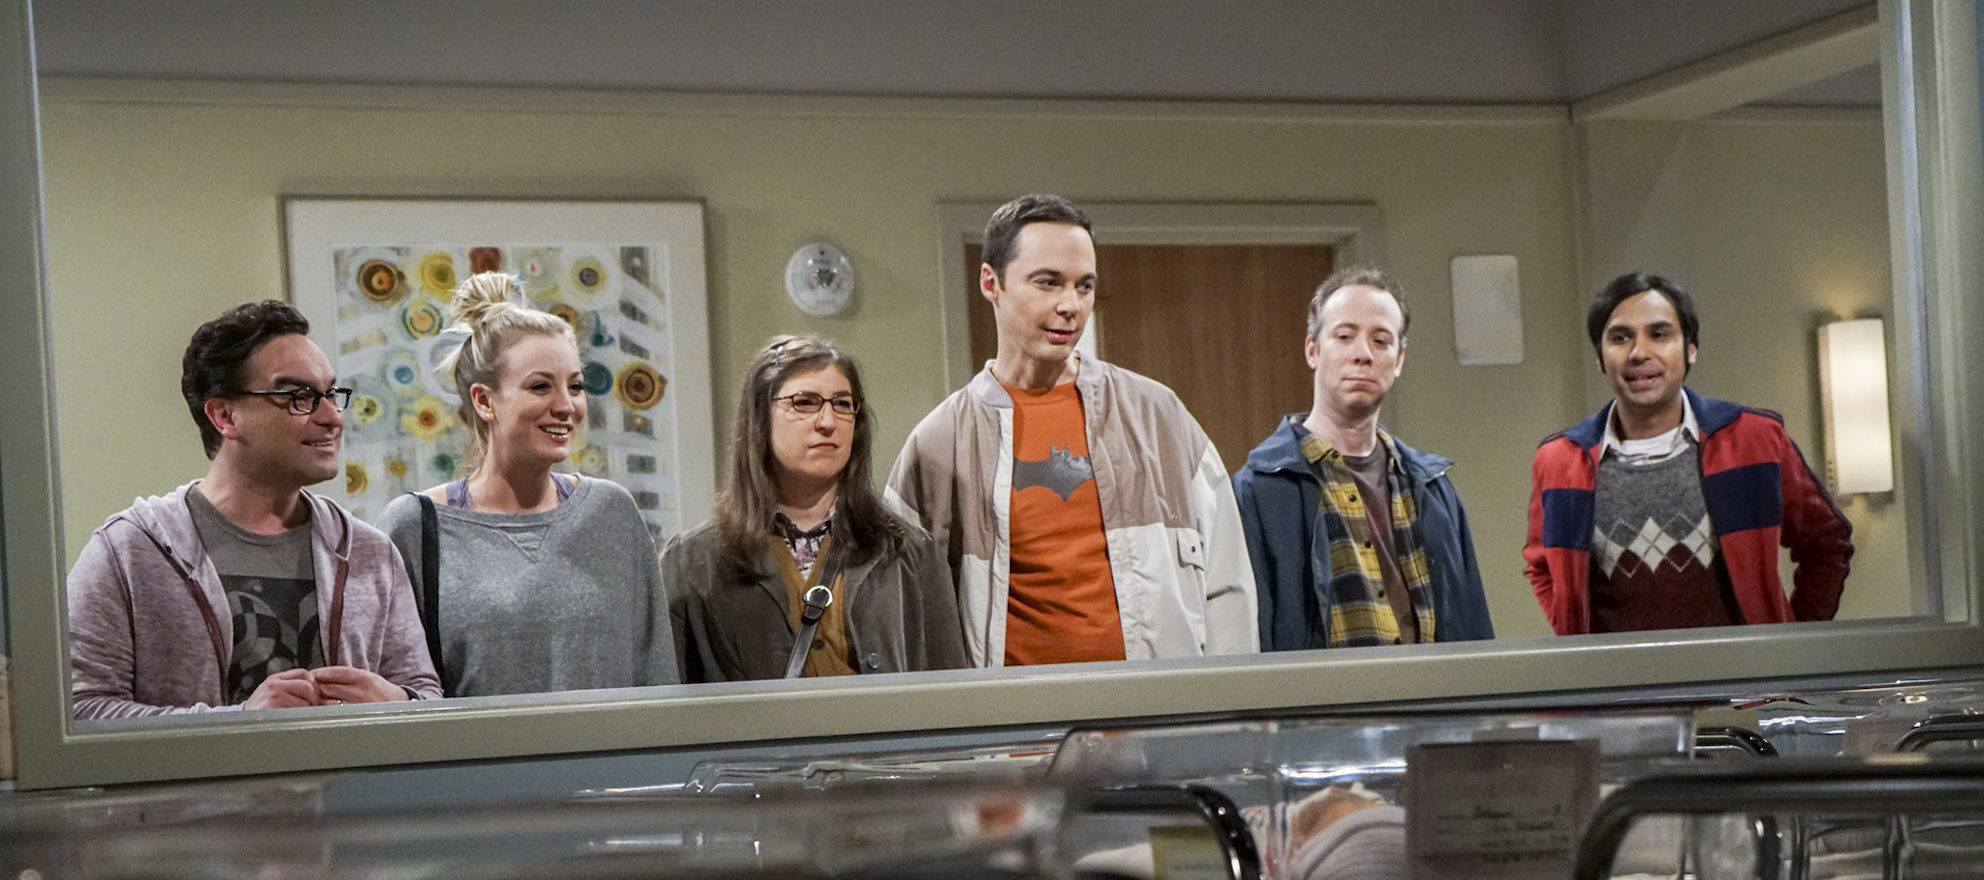 The 'Big Bang Theory' real estate brokerage